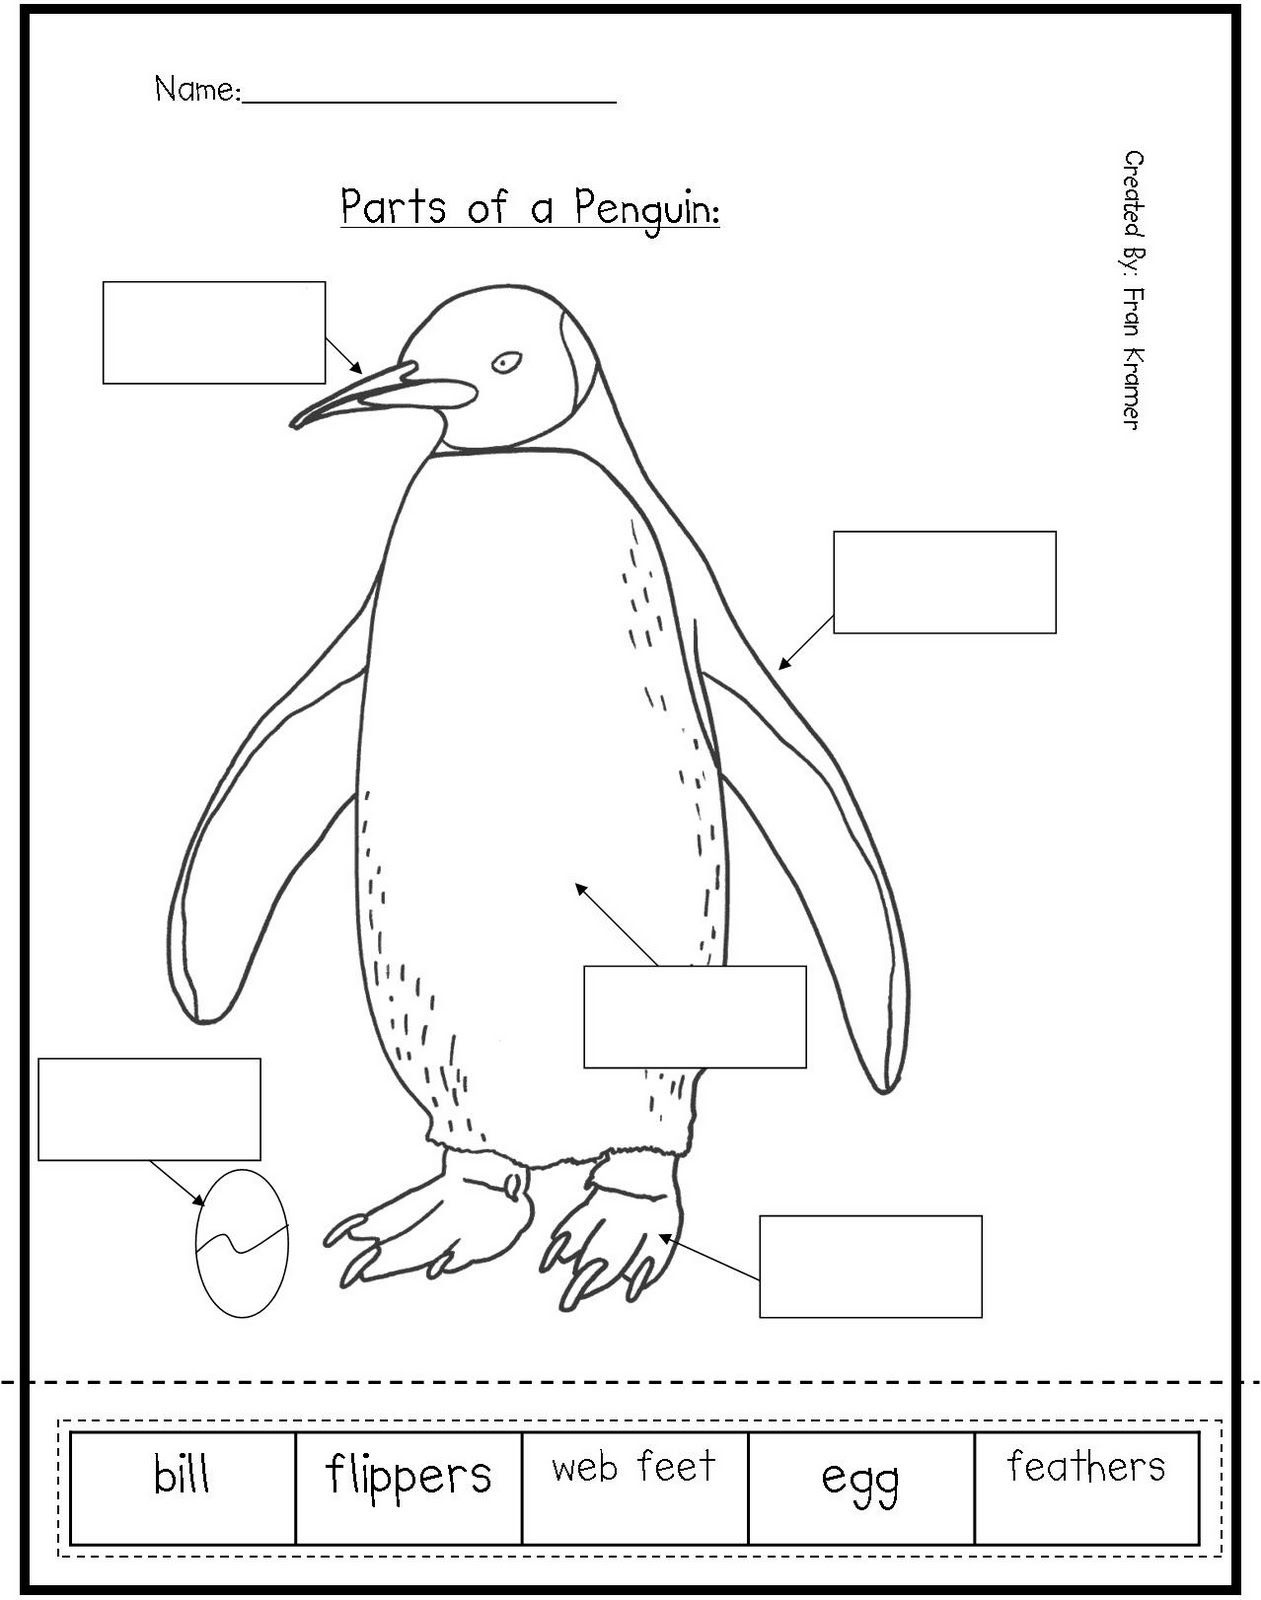 Penguin Worksheets For Preschool | Here Are Some Penguin Activities - Free Printable Penguin Books